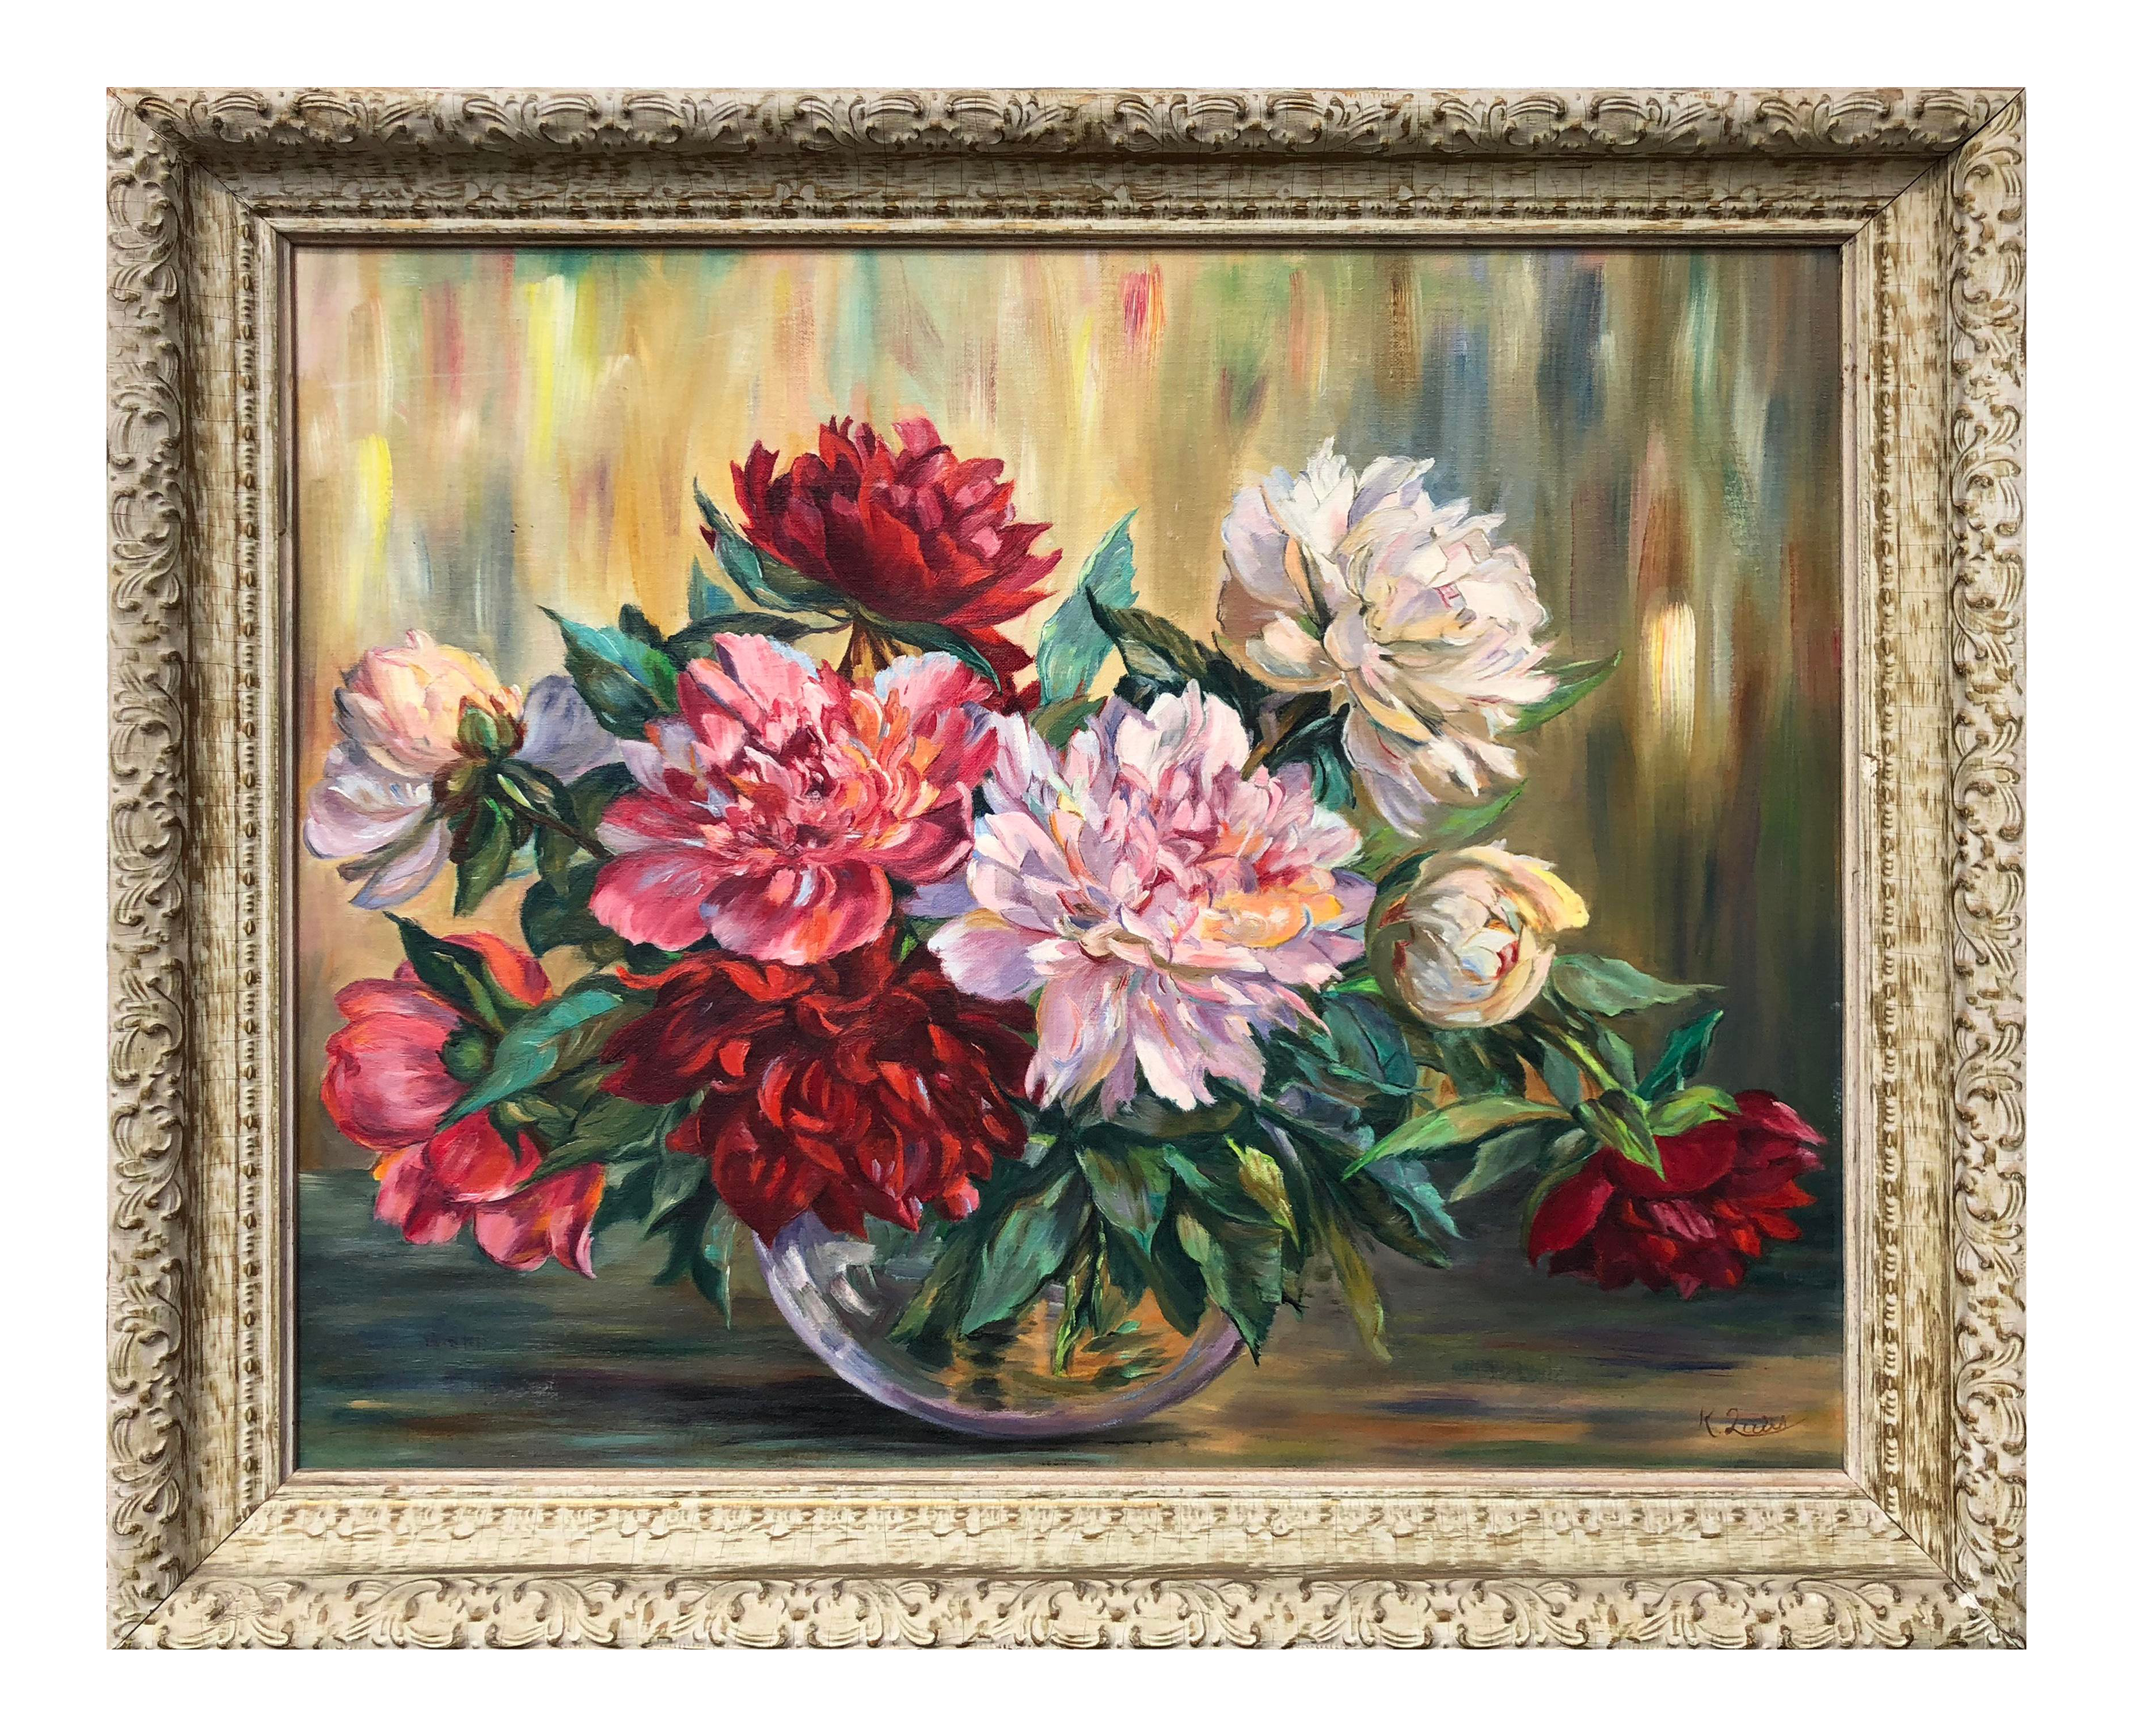 Vintage Floral Still Life Oil Painting Of Peonies Chairish